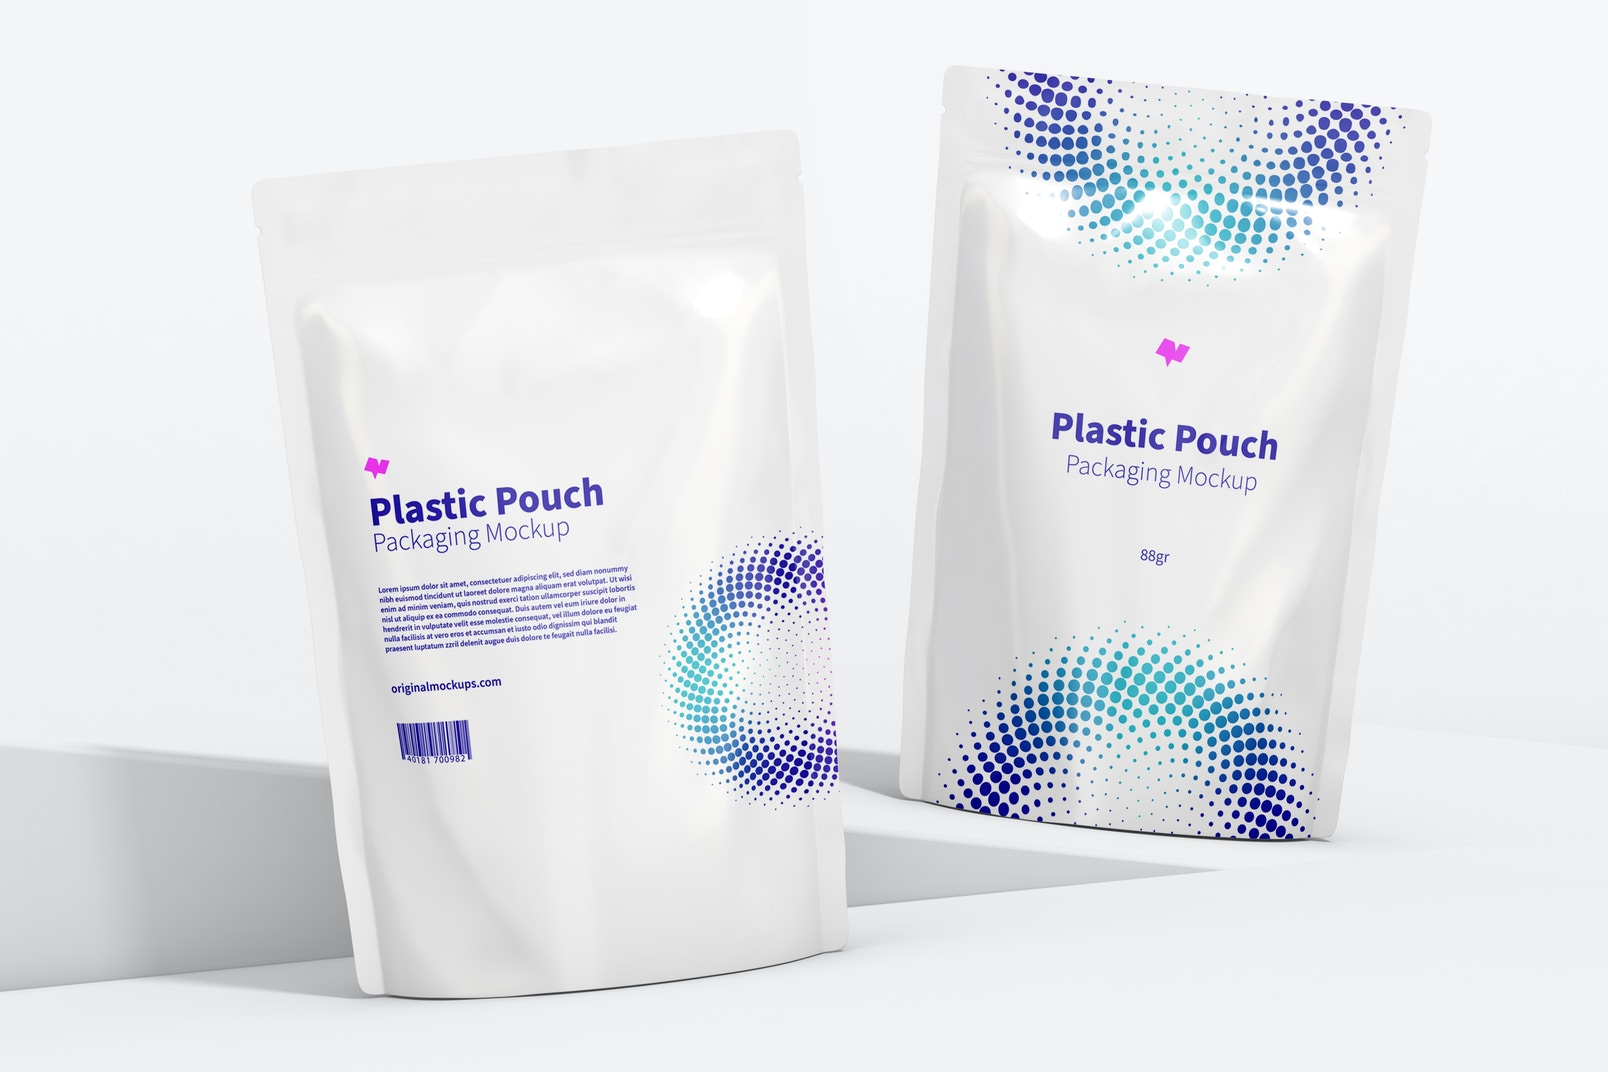 Plastic Pouches Packaging Mockup, Front View